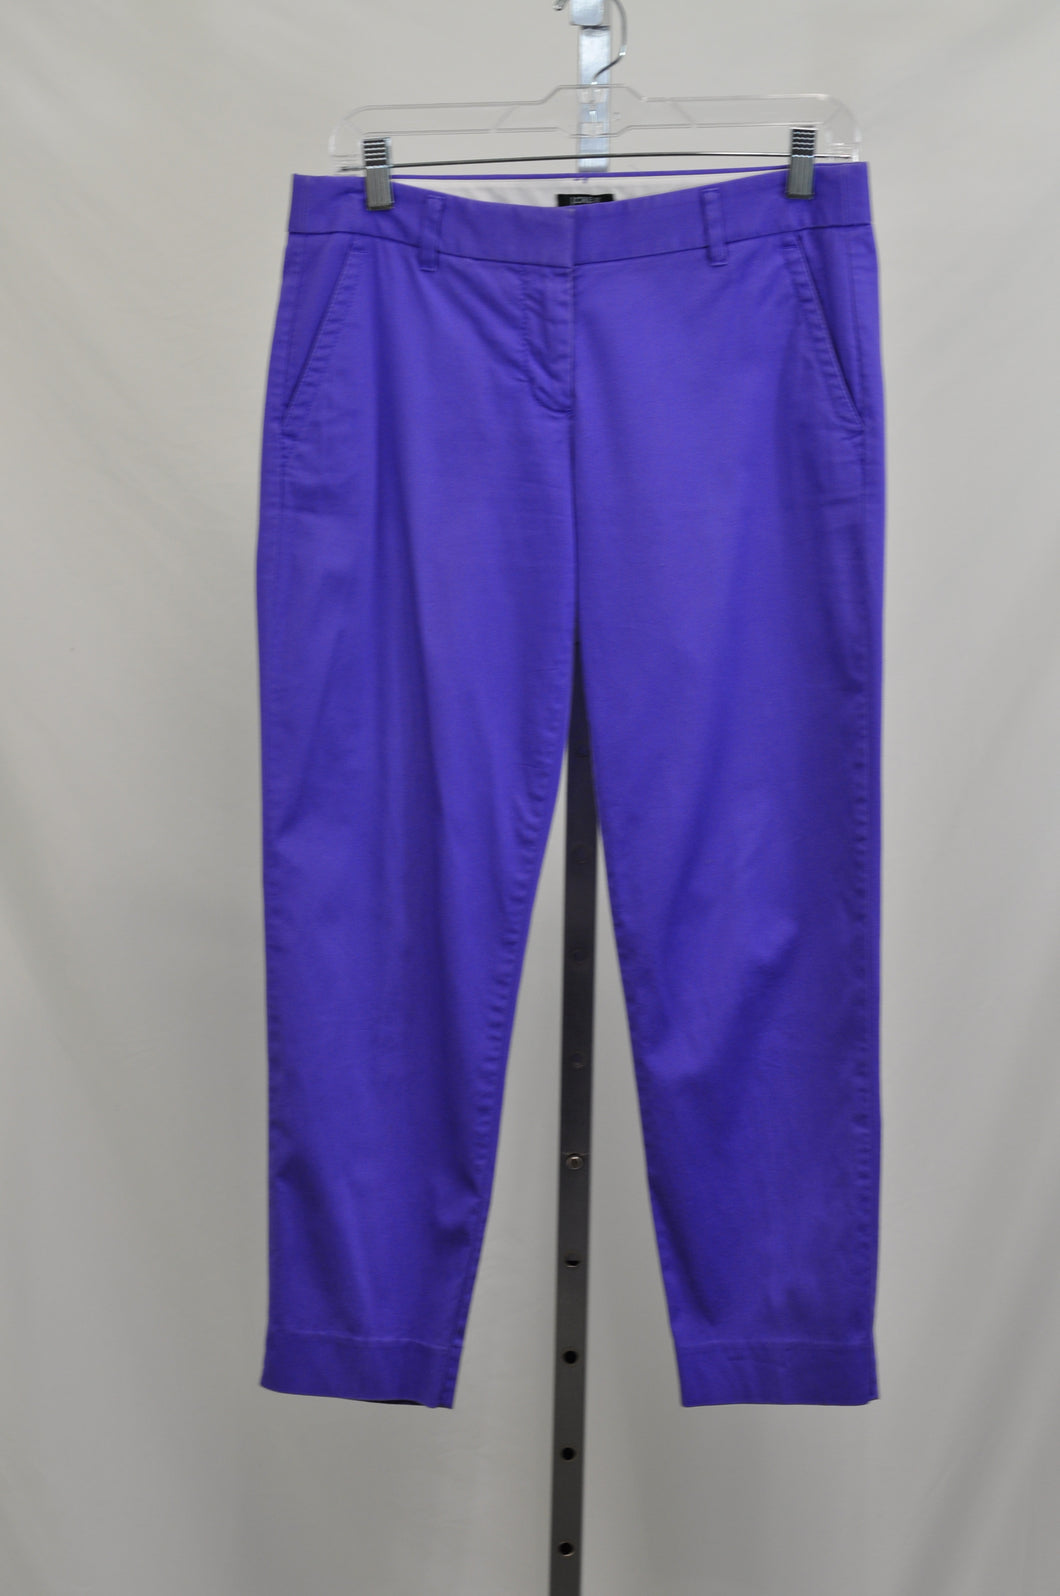 J Crew Lilac City Fit Ankle Pants